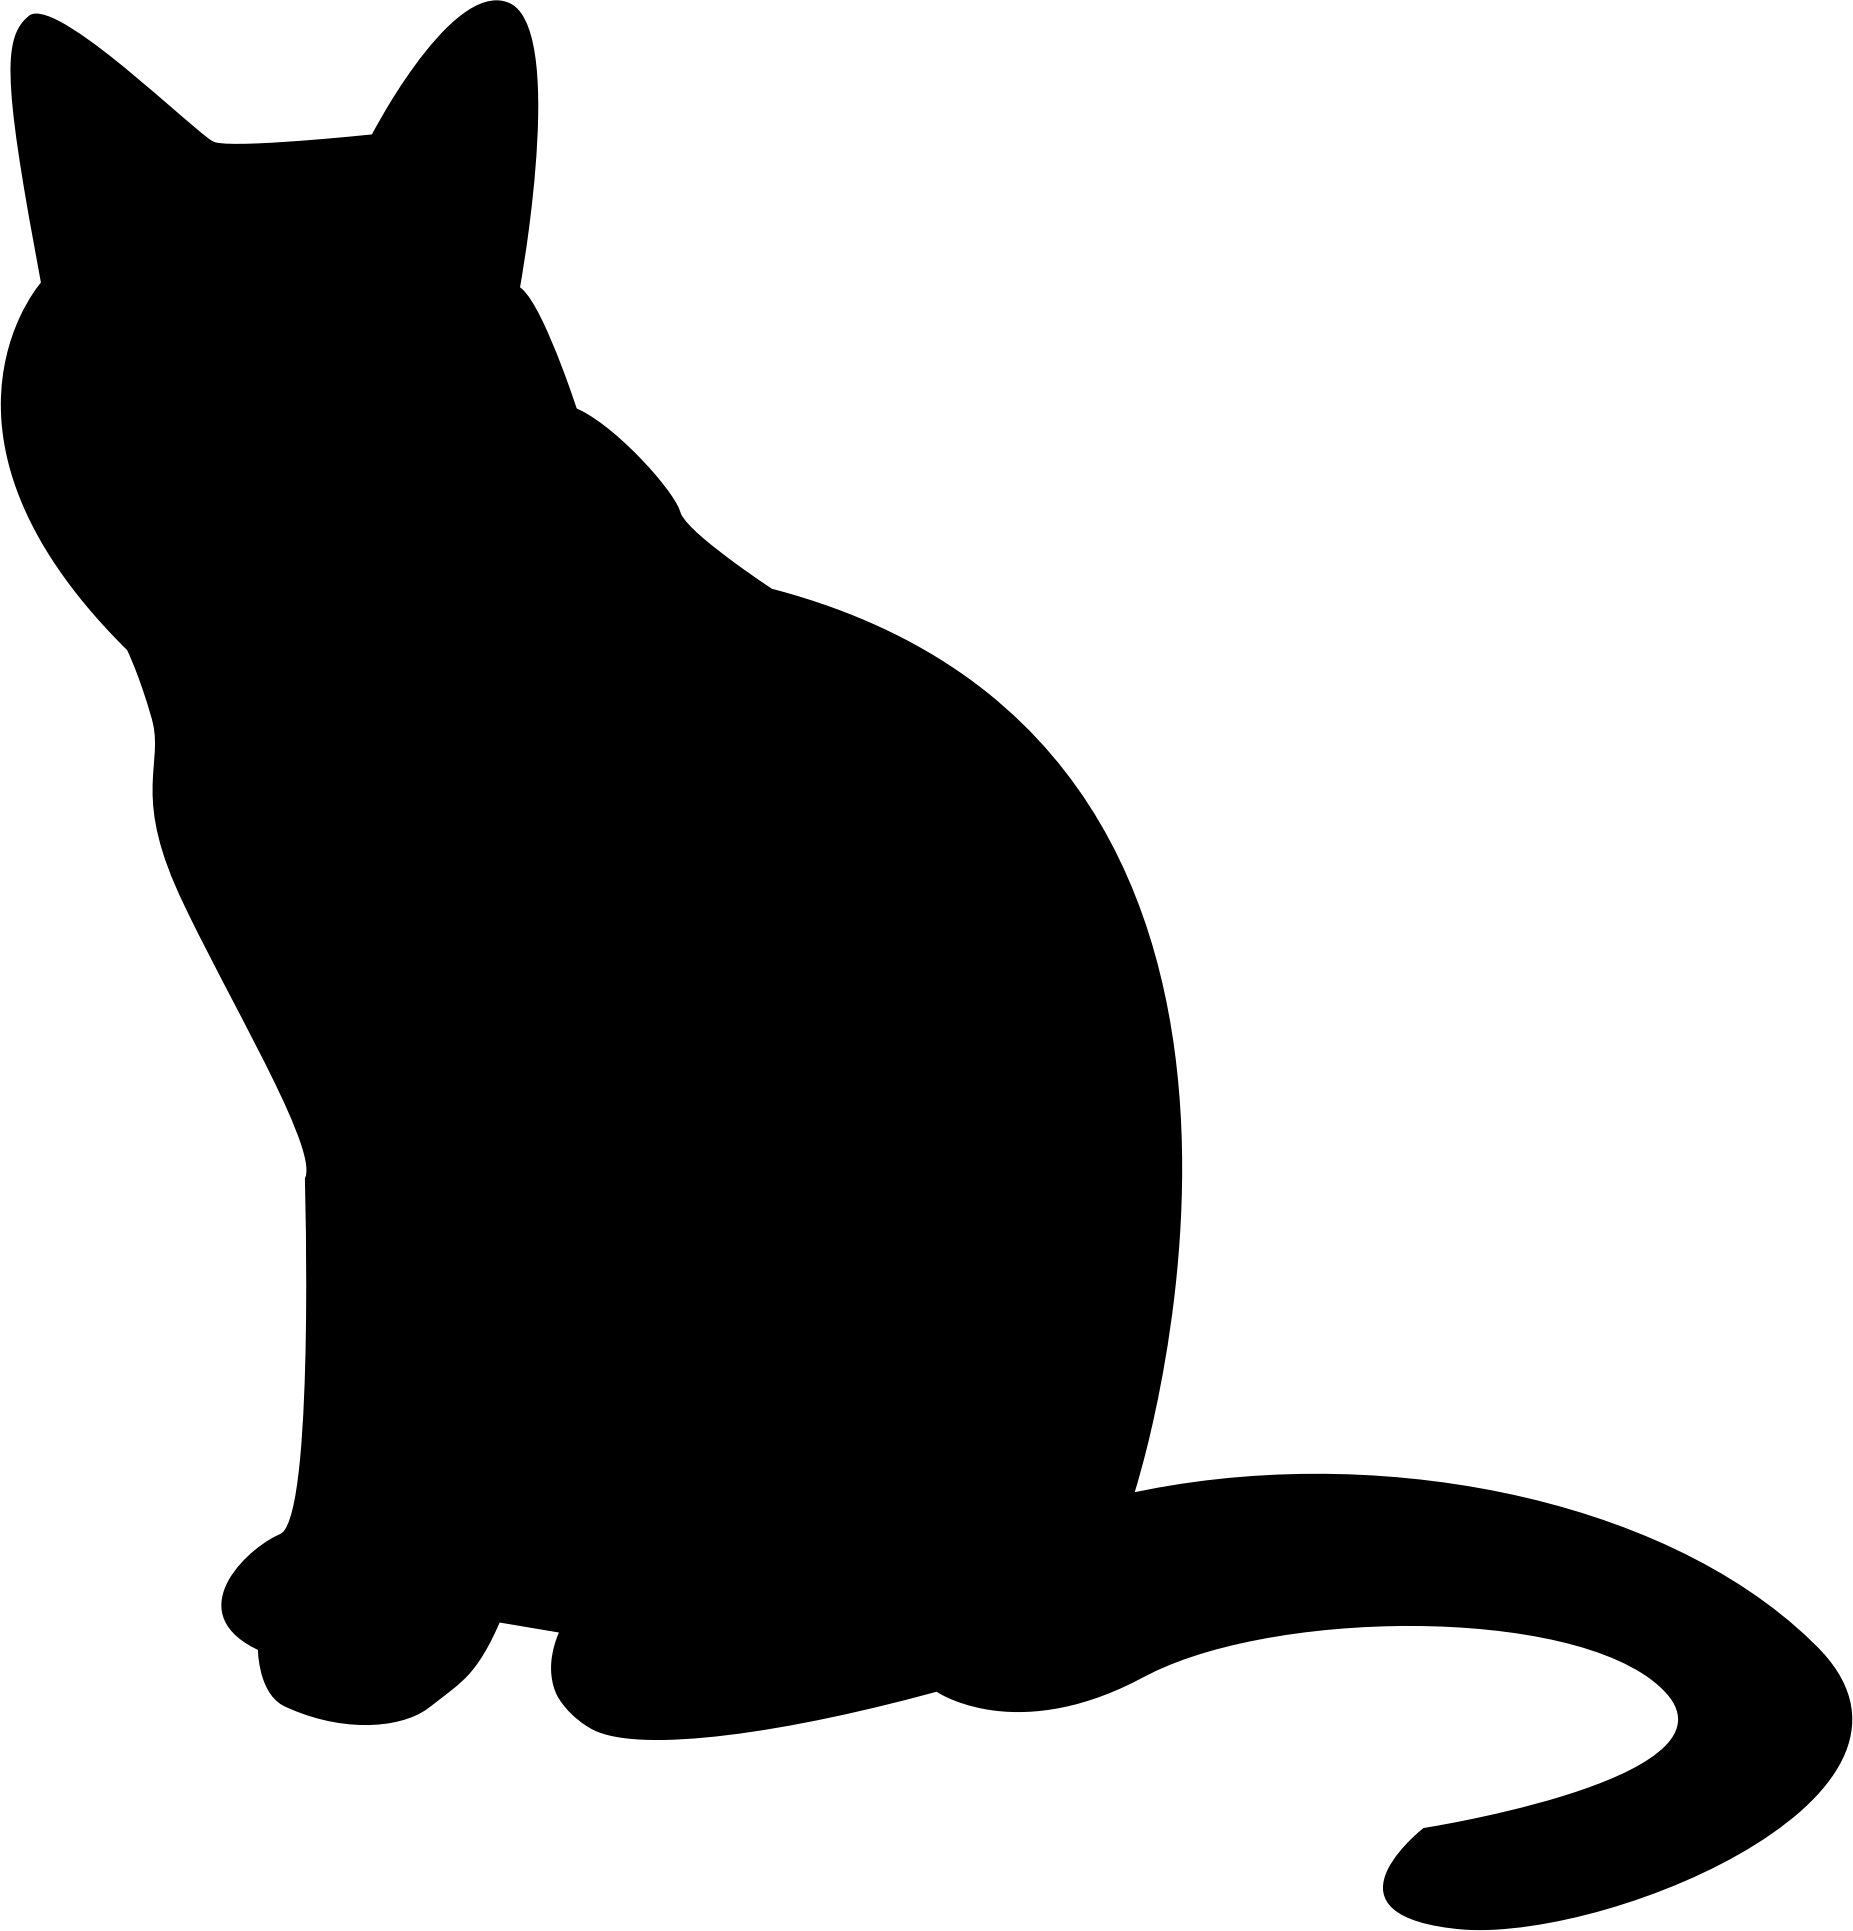 Silhouette transparent png stickpng. Hunting clipart cat